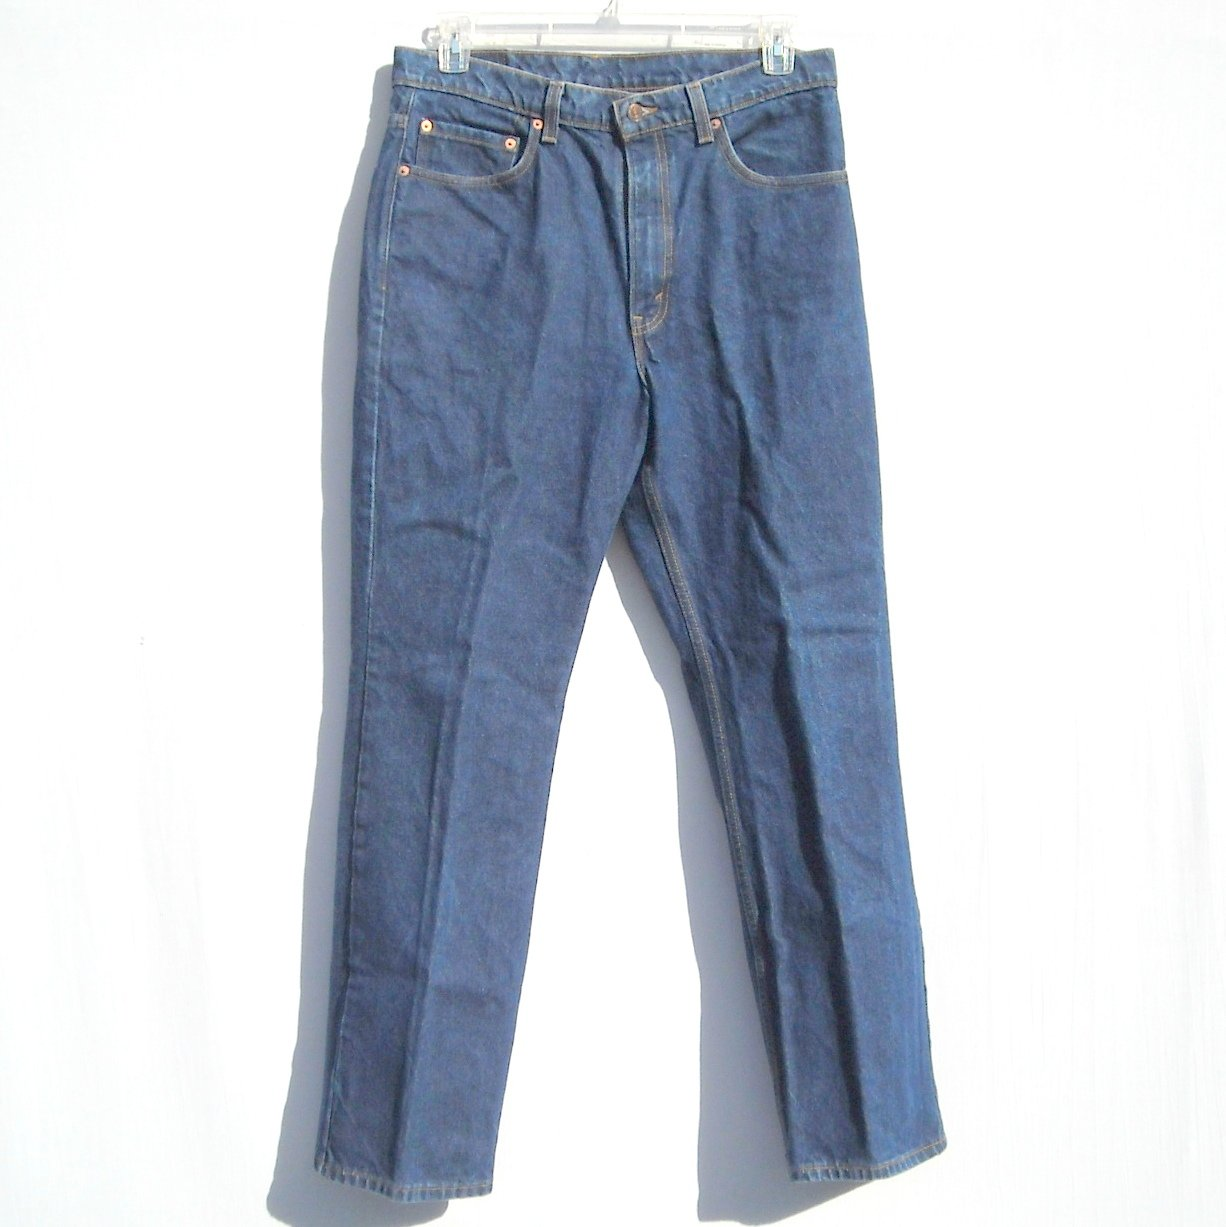 Levi Strauss 517 Boot Cut Blue Jeans Size 35 X 32